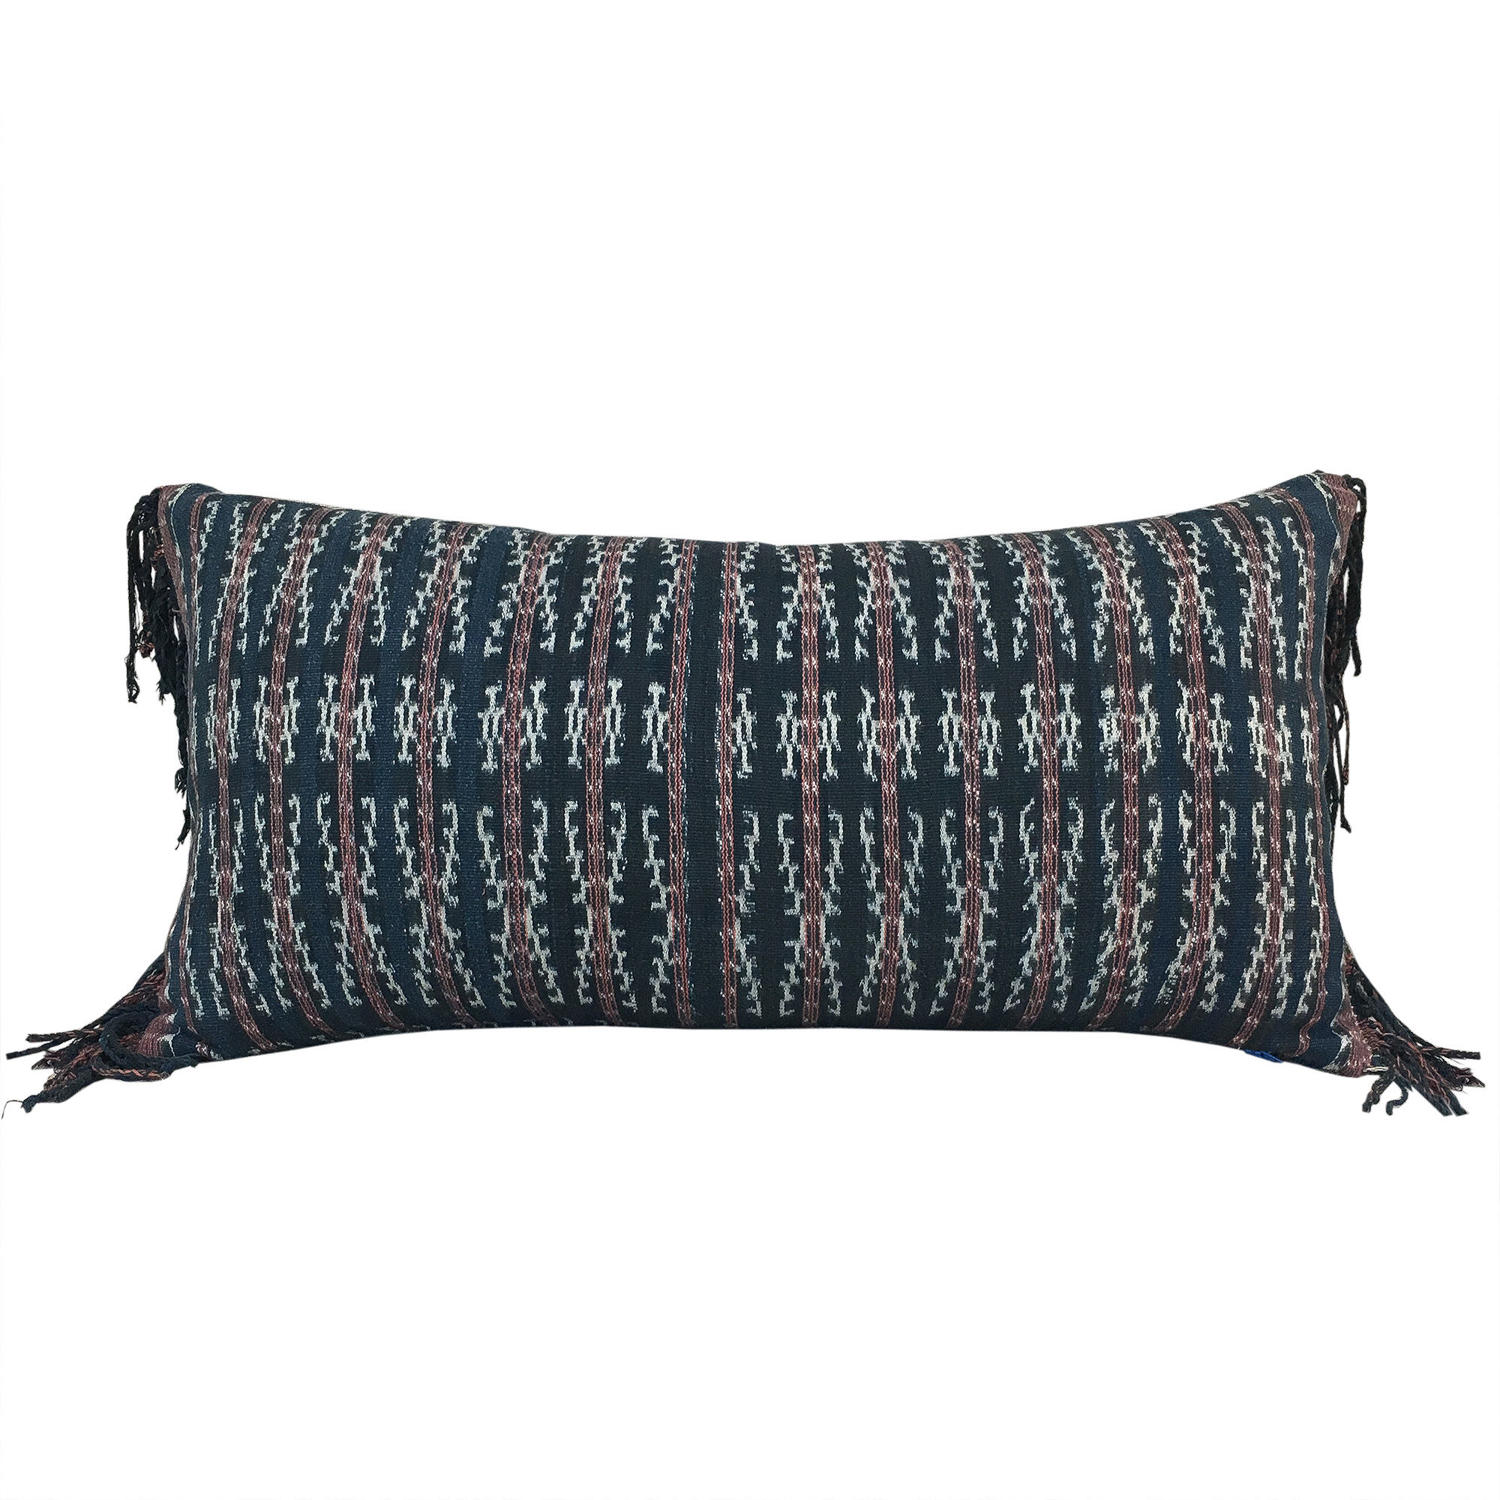 Savu Ikat Cushions with Fringed Sides